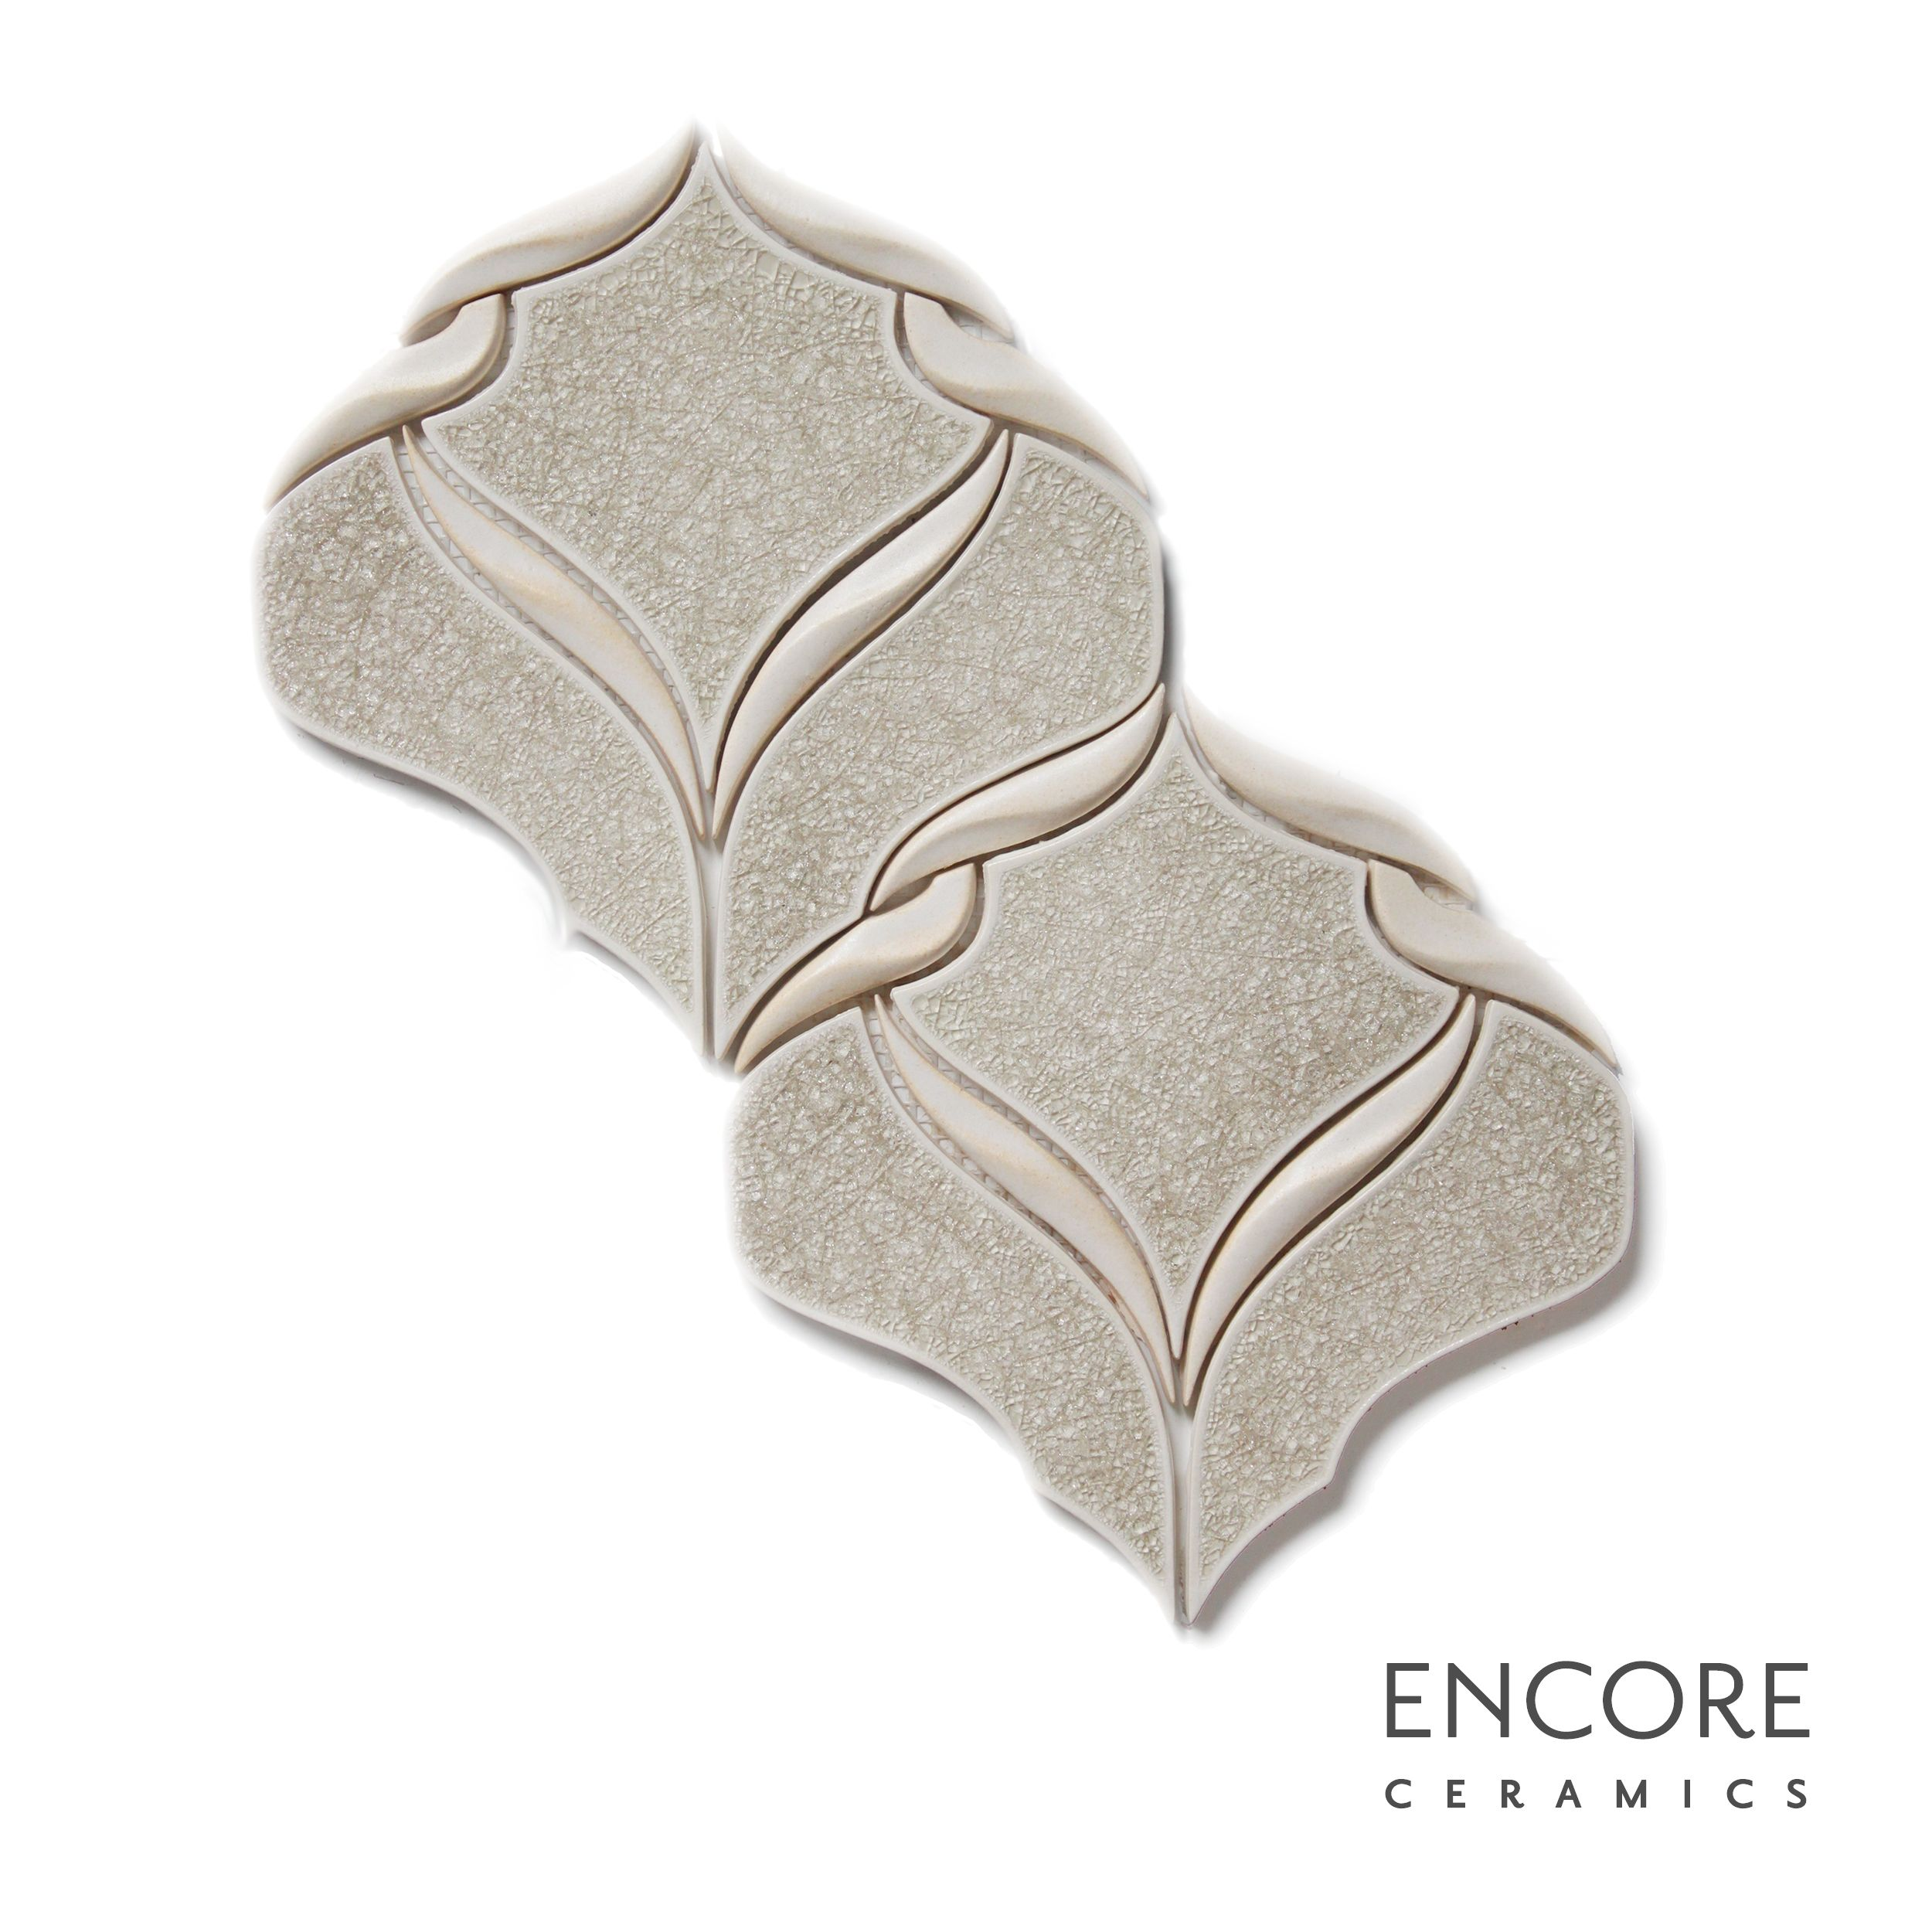 Encore Ceramics | Belvedere mosaic hand-glazed in Martini jewel with dimensional ribbons in Capri matte | Sustainably made in Oregon